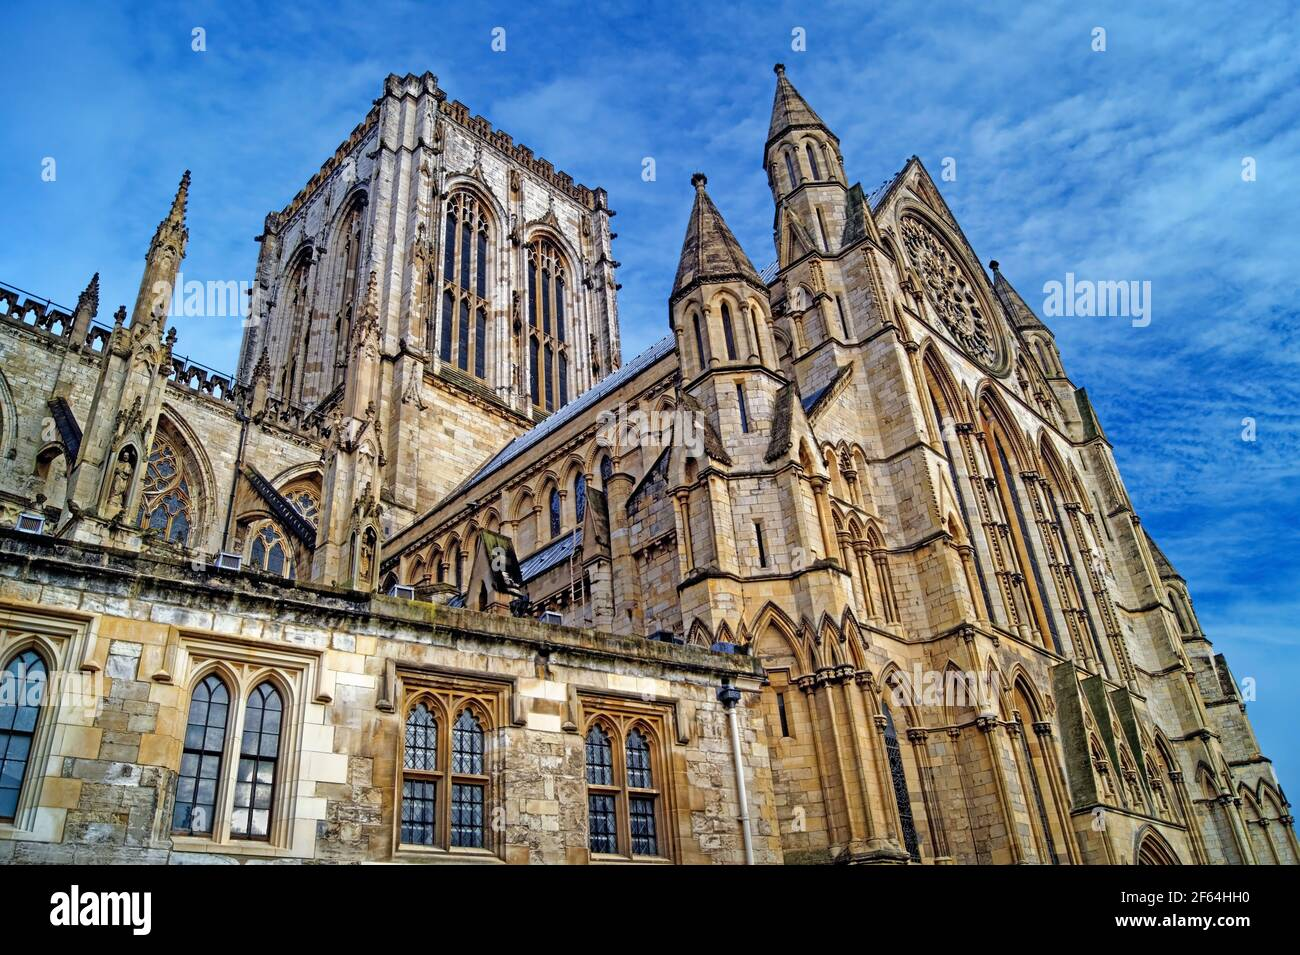 Royaume-Uni, North Yorkshire, York, Central Tower et South face of York Minster Banque D'Images